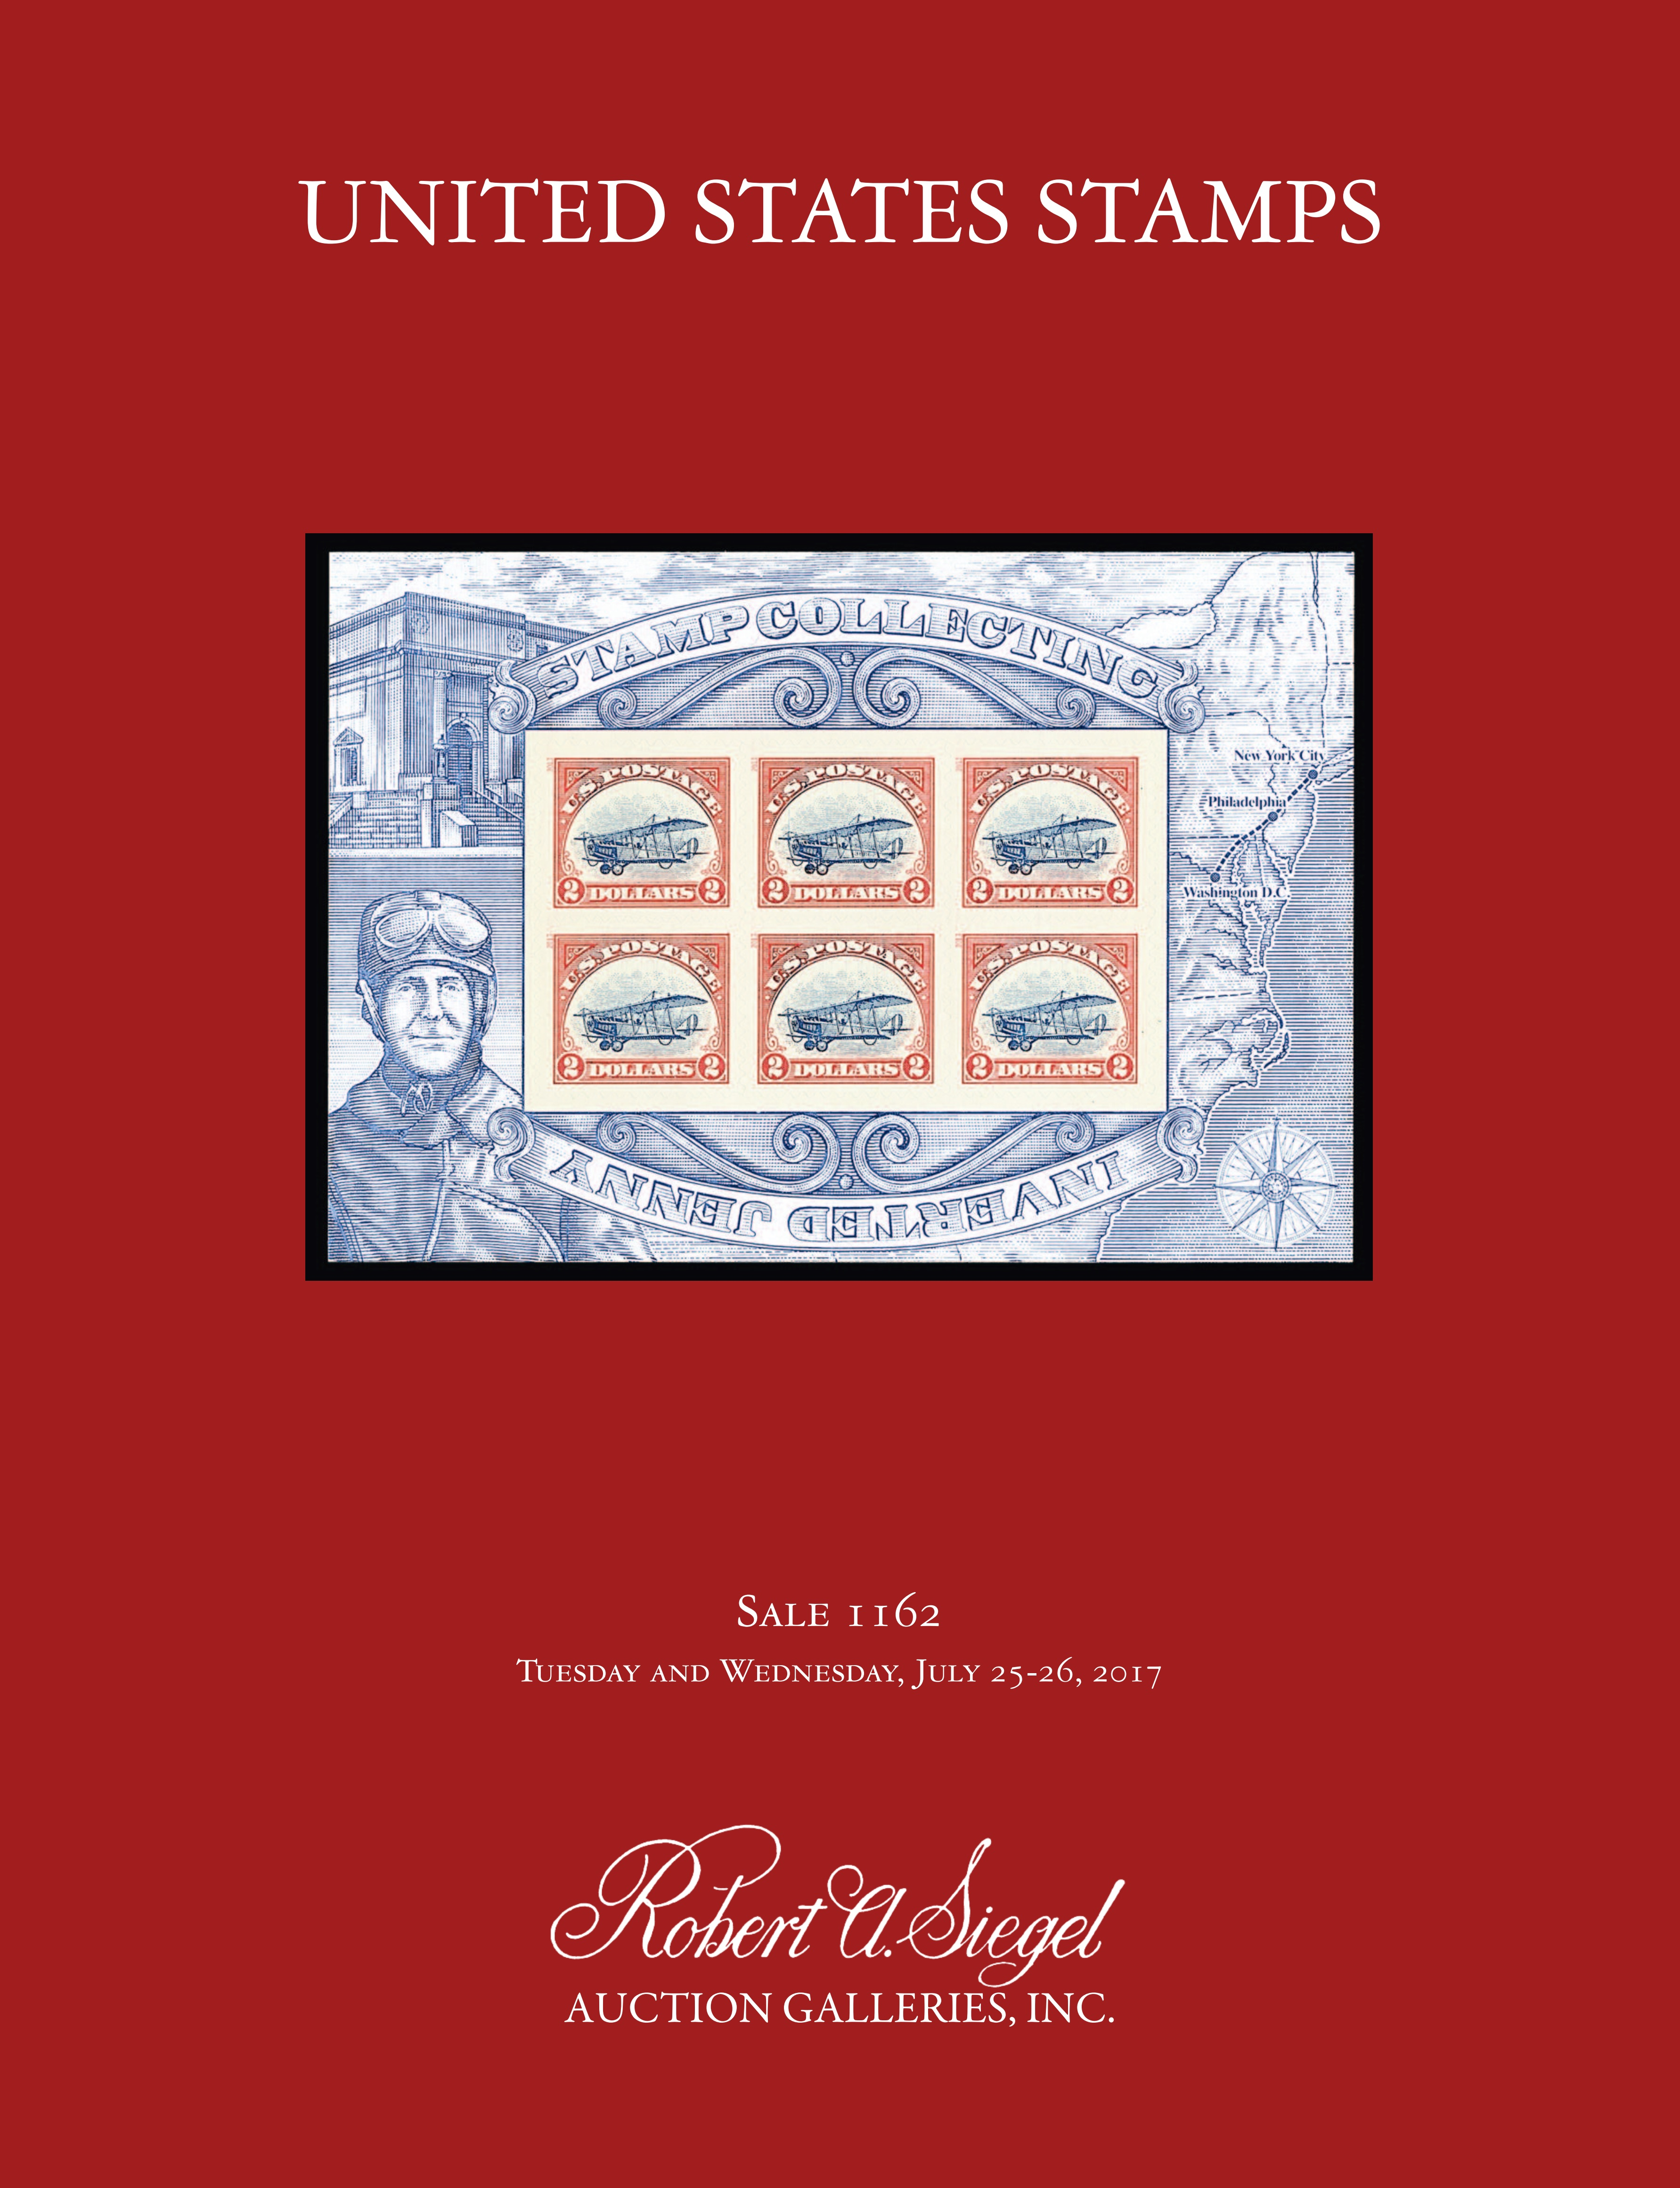 quantities by the U.S. Postal Service in 2013, graces the cover of the catalogue for Robert A. Siegel Auction Galleries Sale #1162, conducted on July 25-26, 2017.